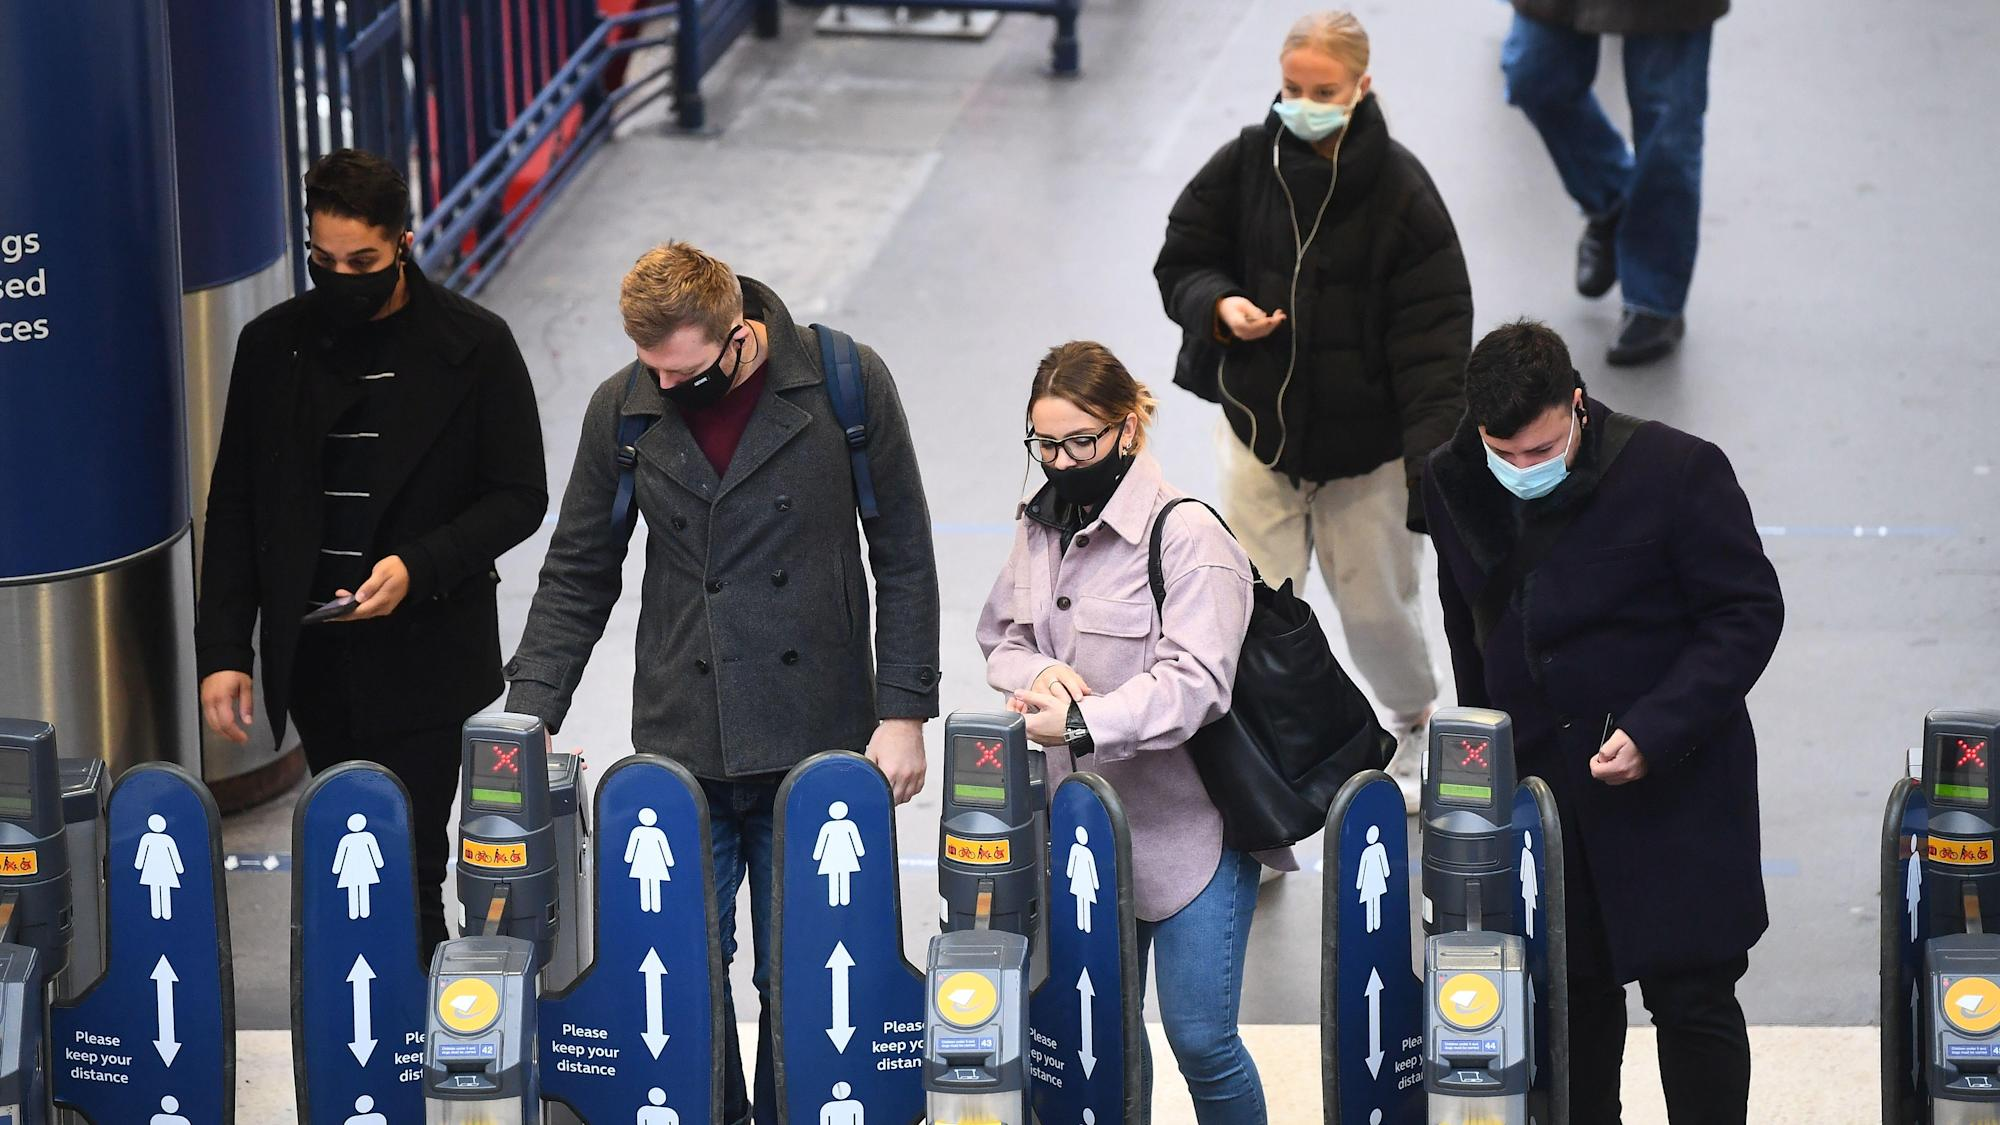 No train operators or major bus and coach firms will require masks in England